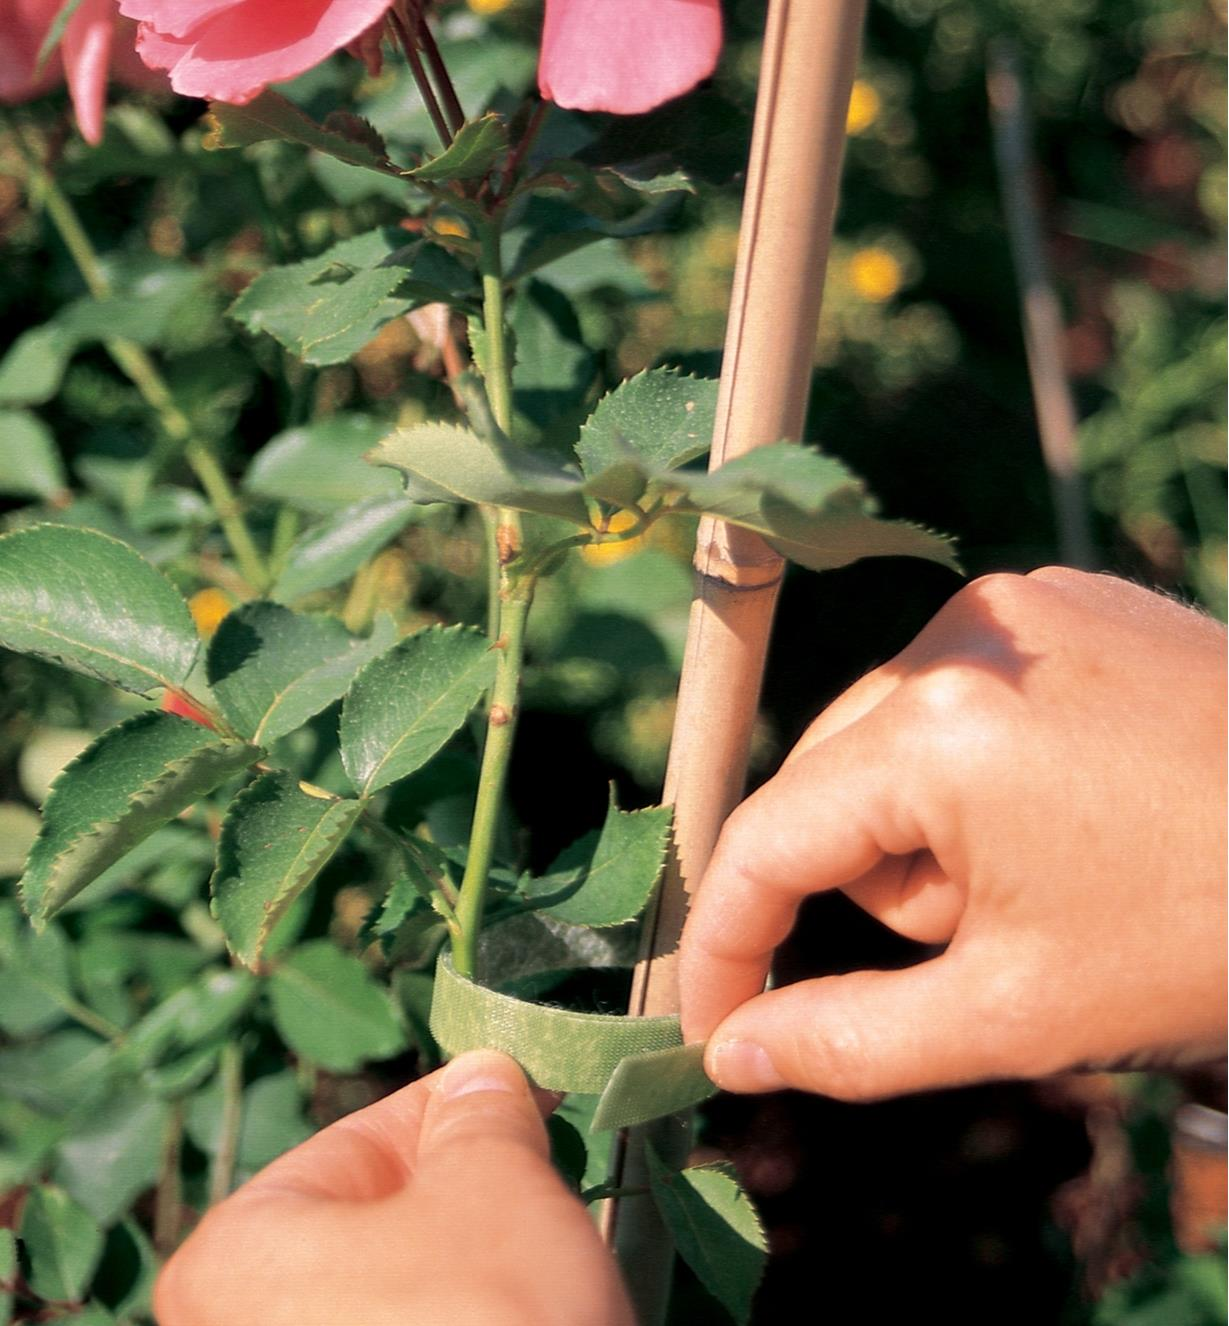 VELCRO Brand Plant Tie holds a rose stem to a stake